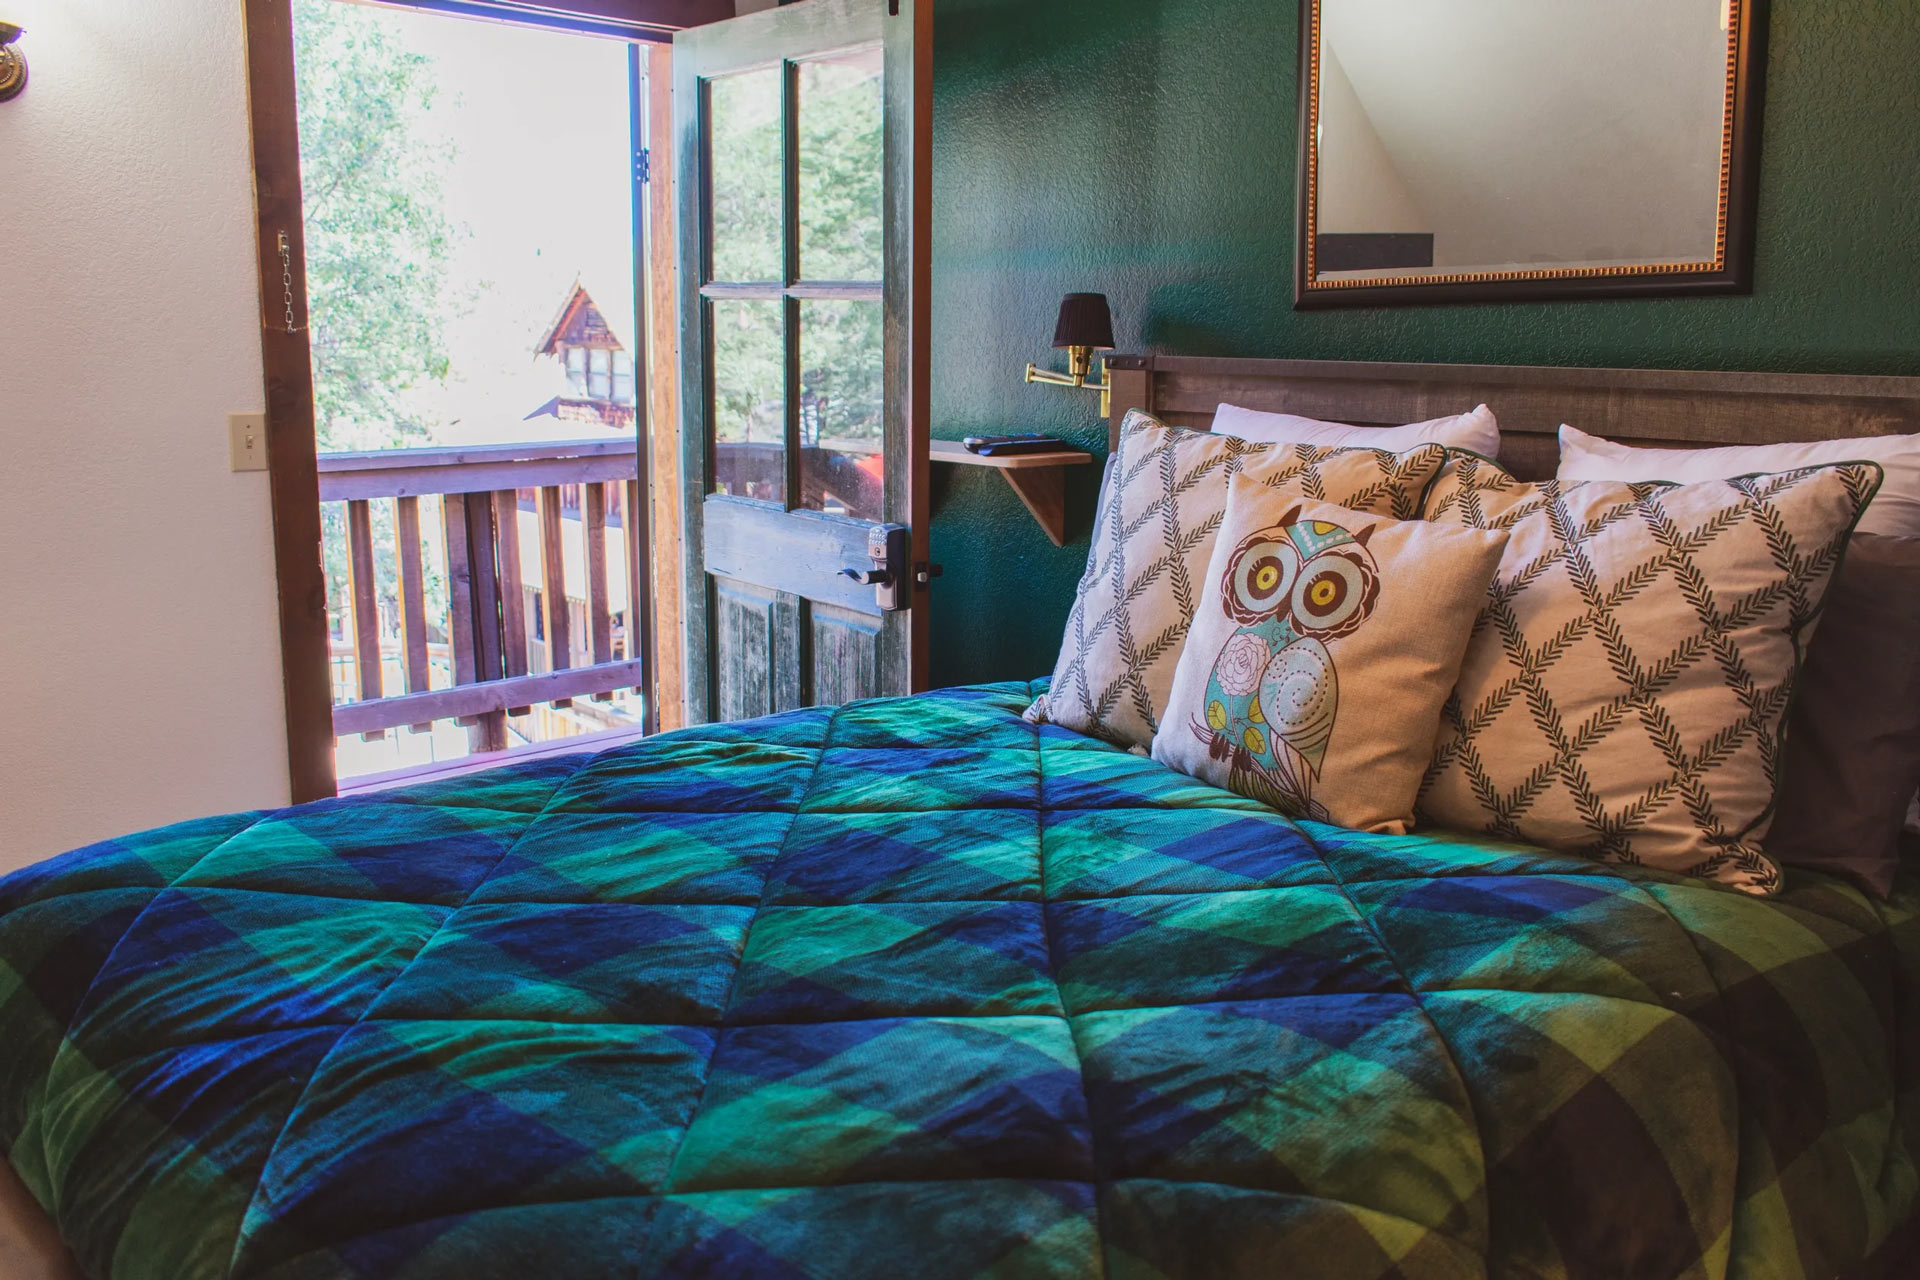 Carriage house bedroom with balcony with a view of the forest